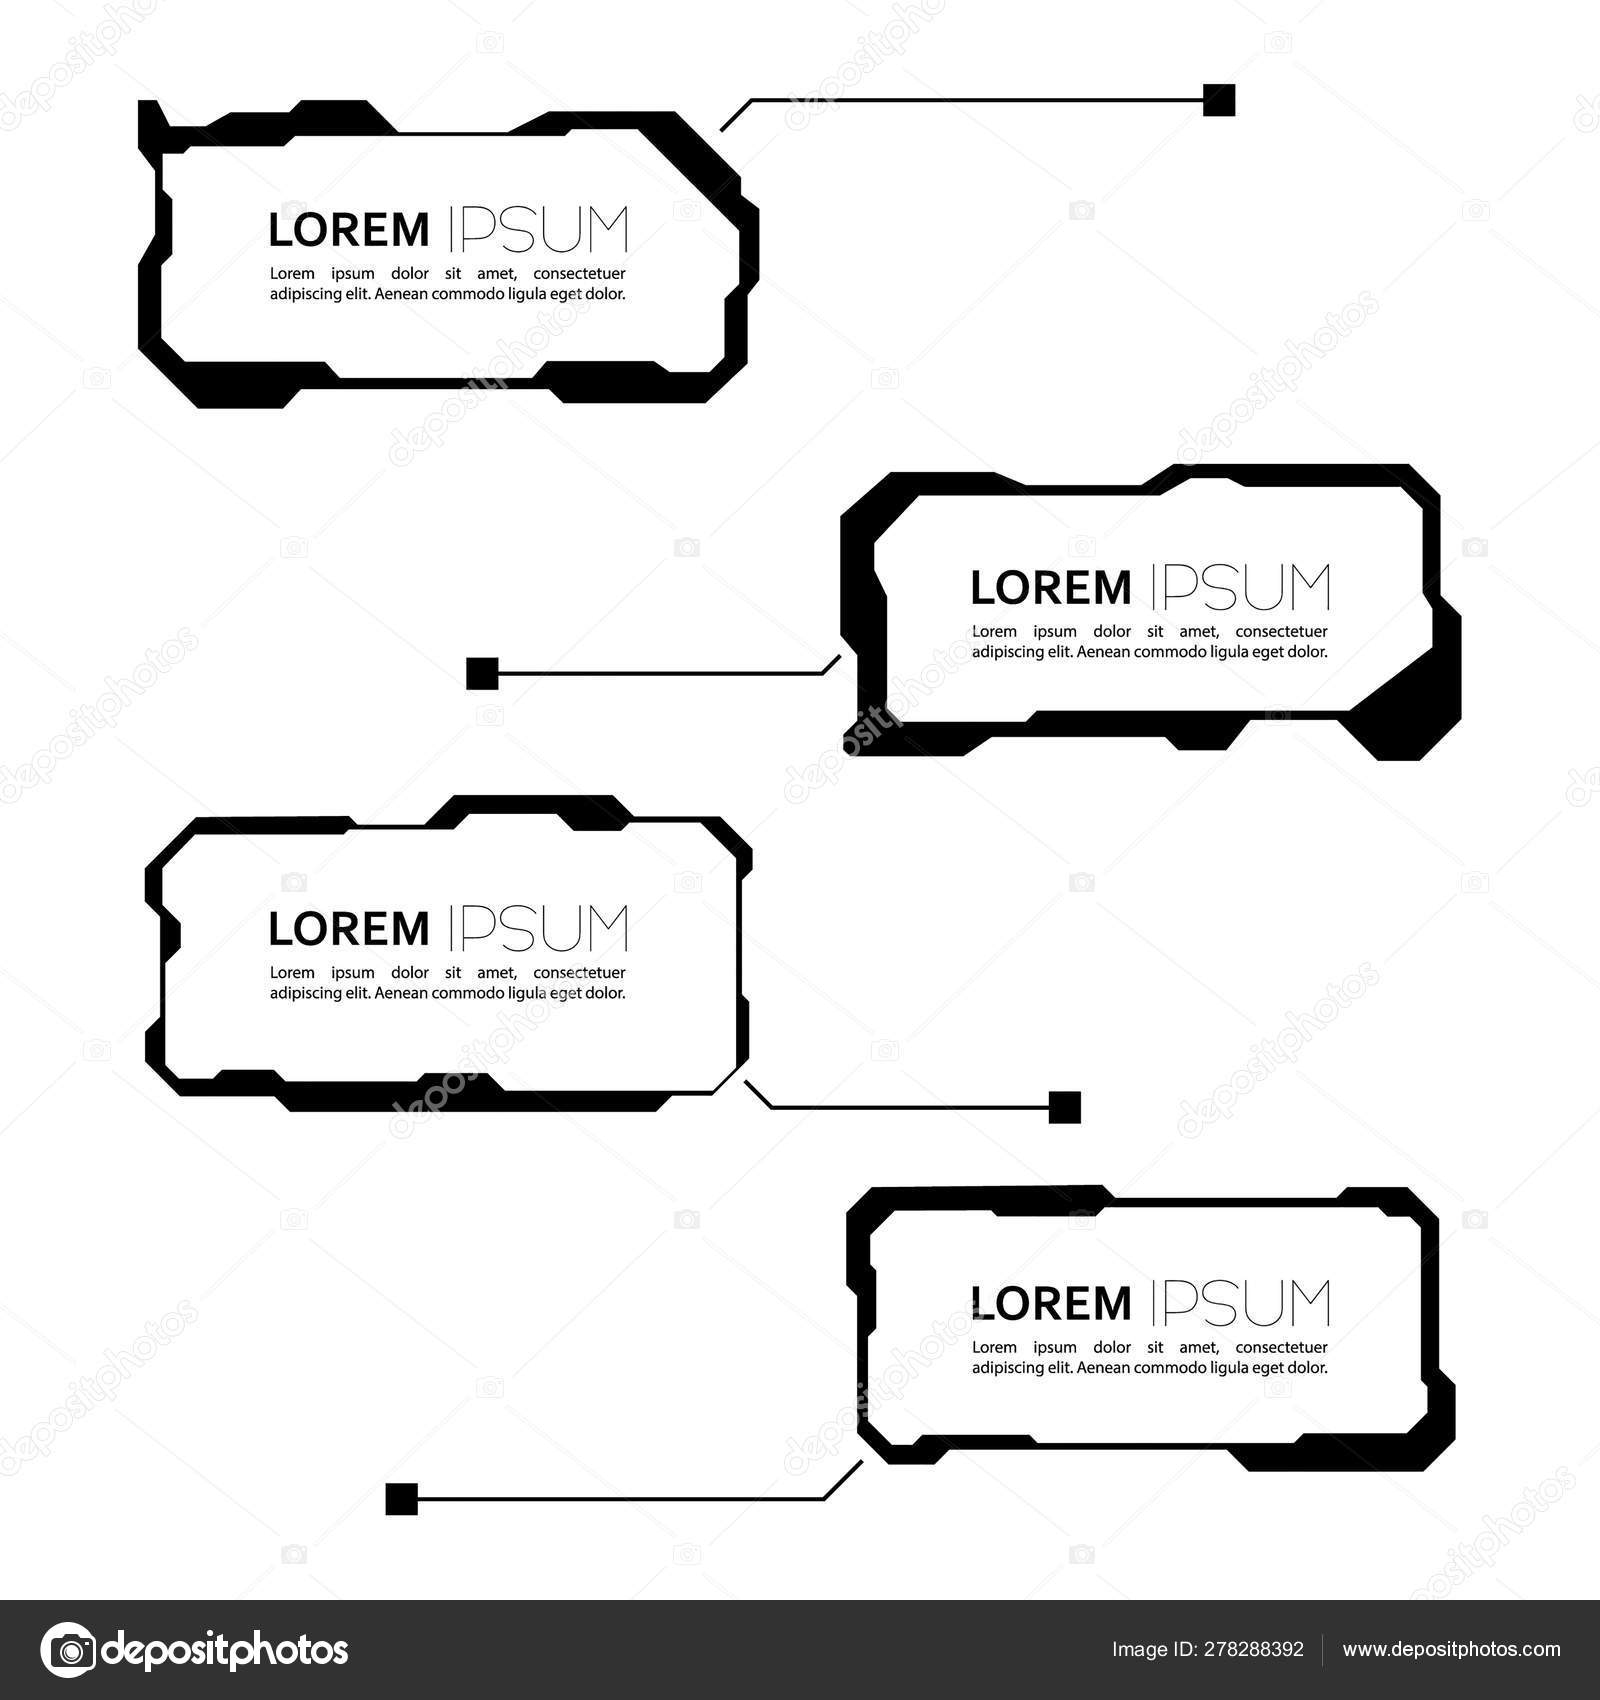 set of hud futuristic frame stock vector c sumkinn 278288392 set of hud futuristic frame stock vector c sumkinn 278288392